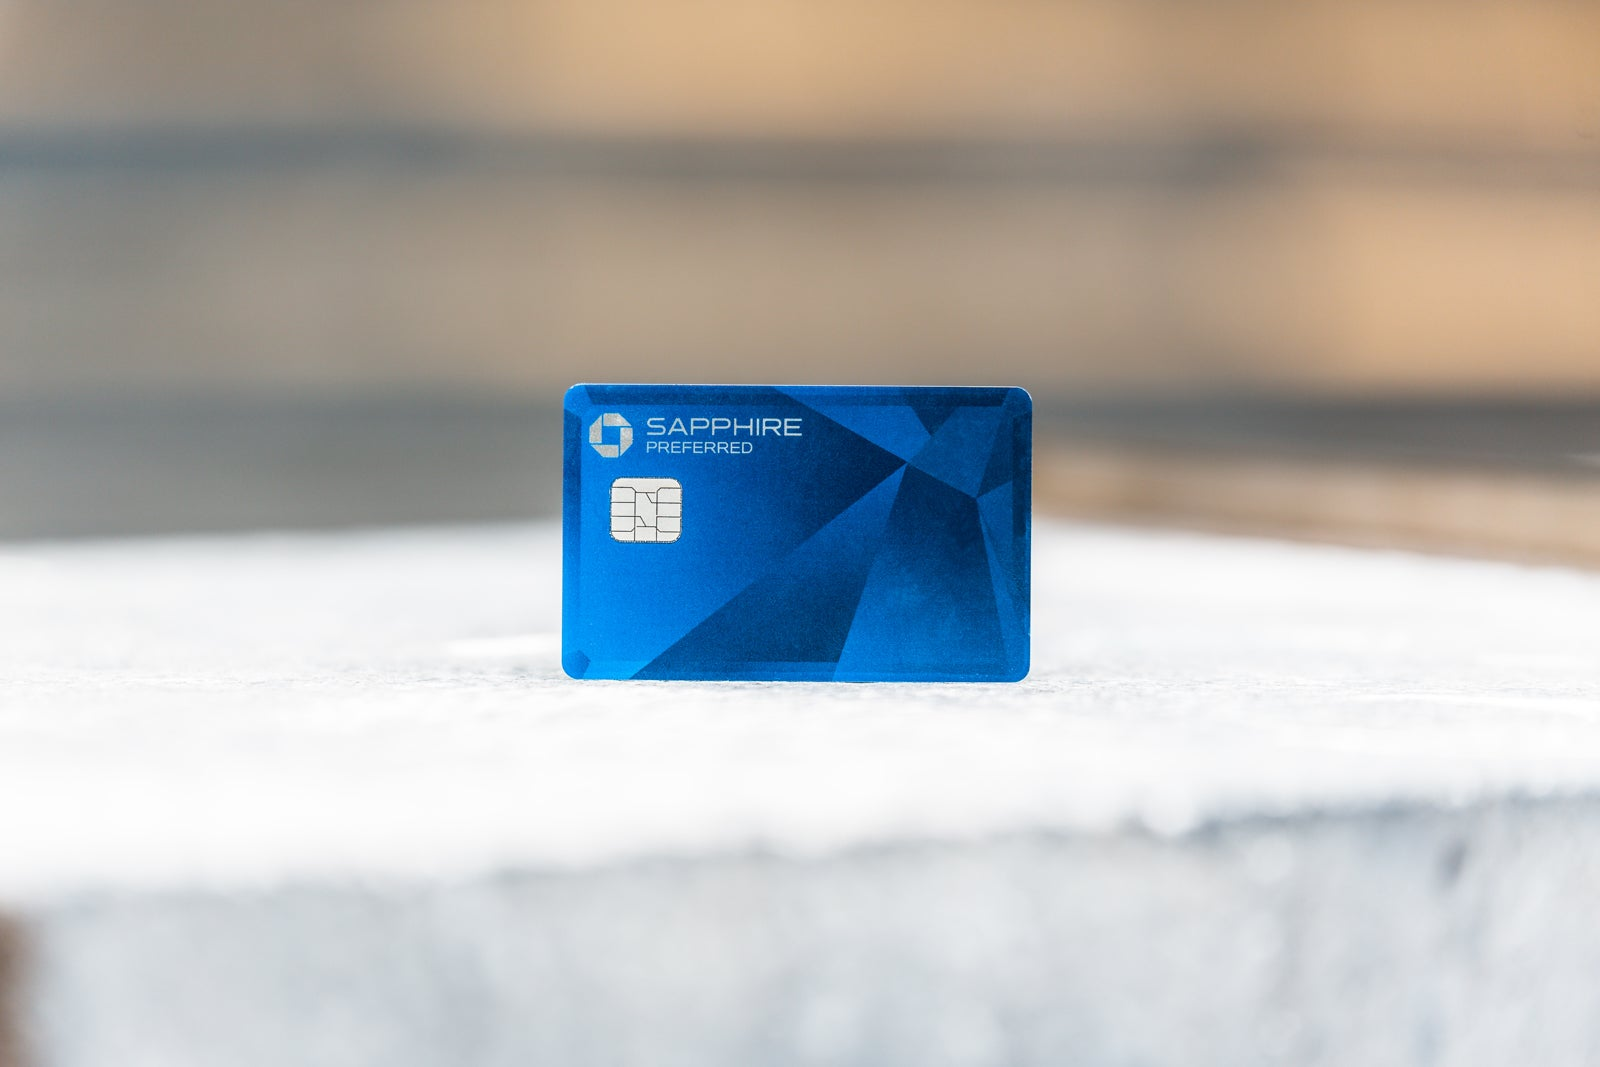 Chase Sapphire Preferred review: How to get $1,000+ worth of travel